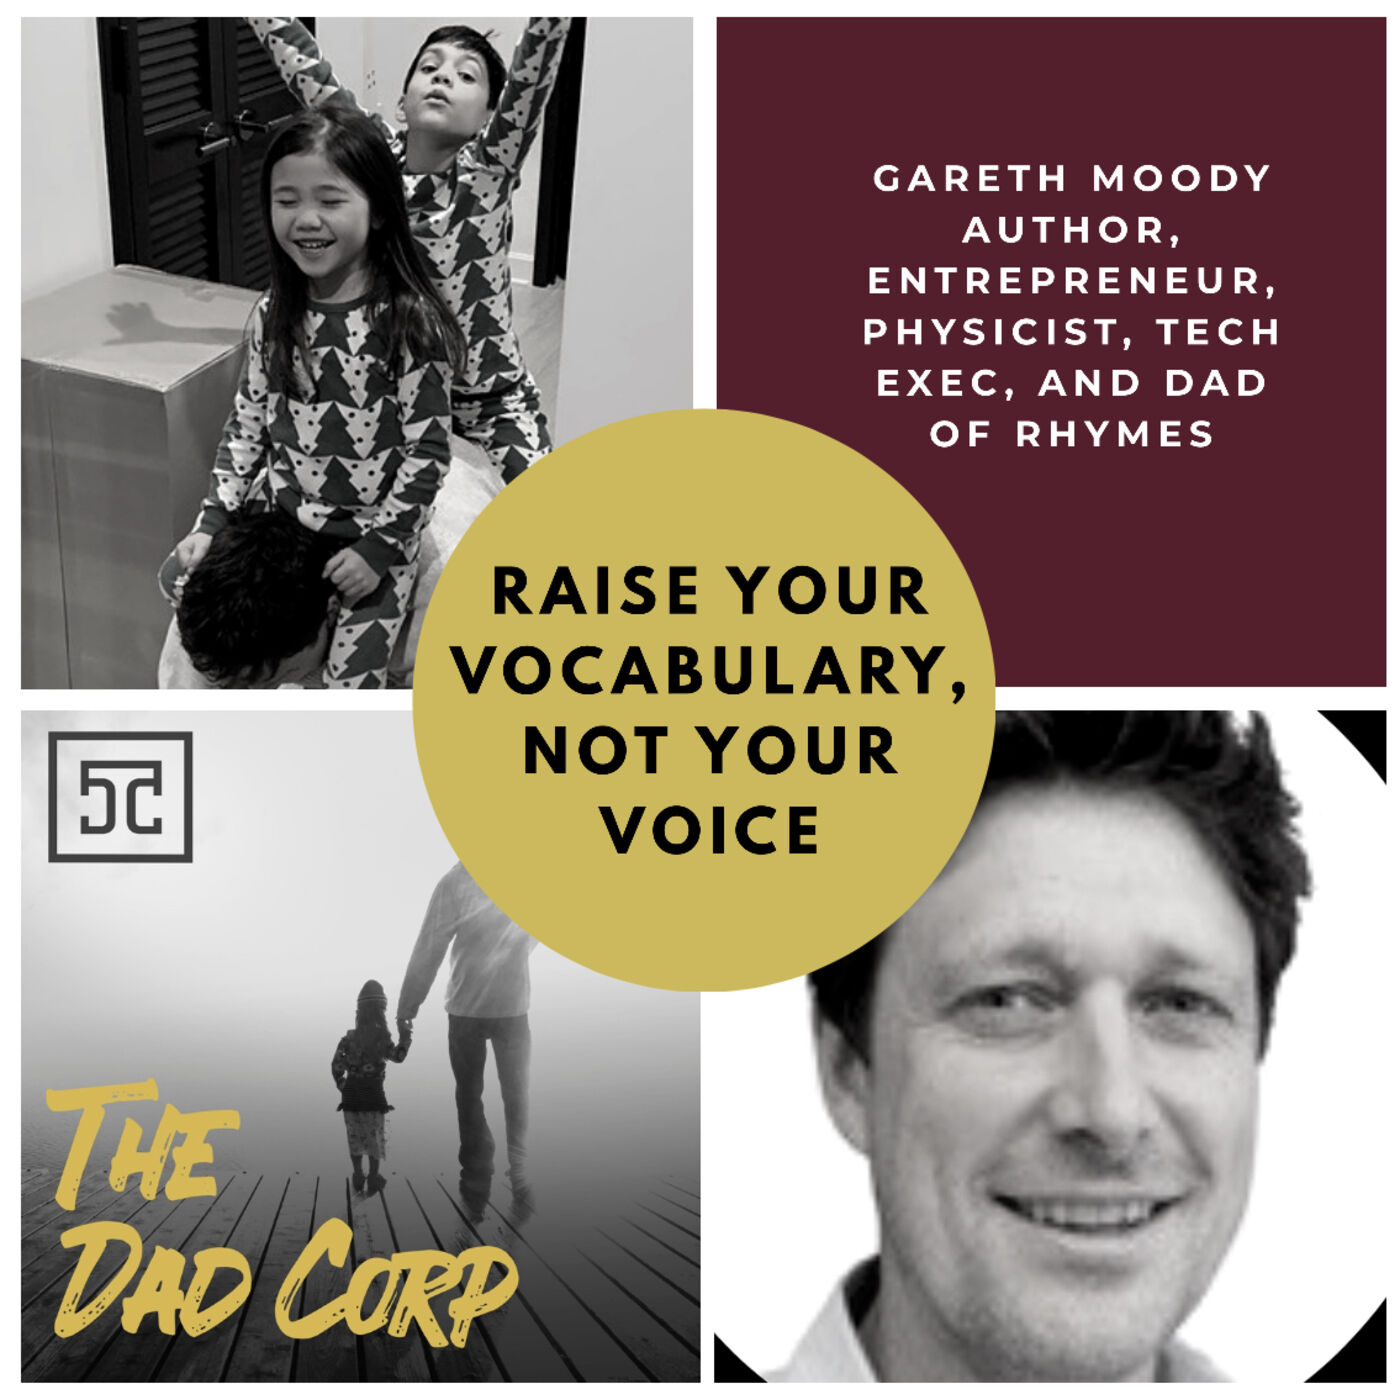 Raise Your Vocabulary, Not Your Voice with Author, Entrepreneur, Tech Exec, and Dad of Rhymes Gareth Moody